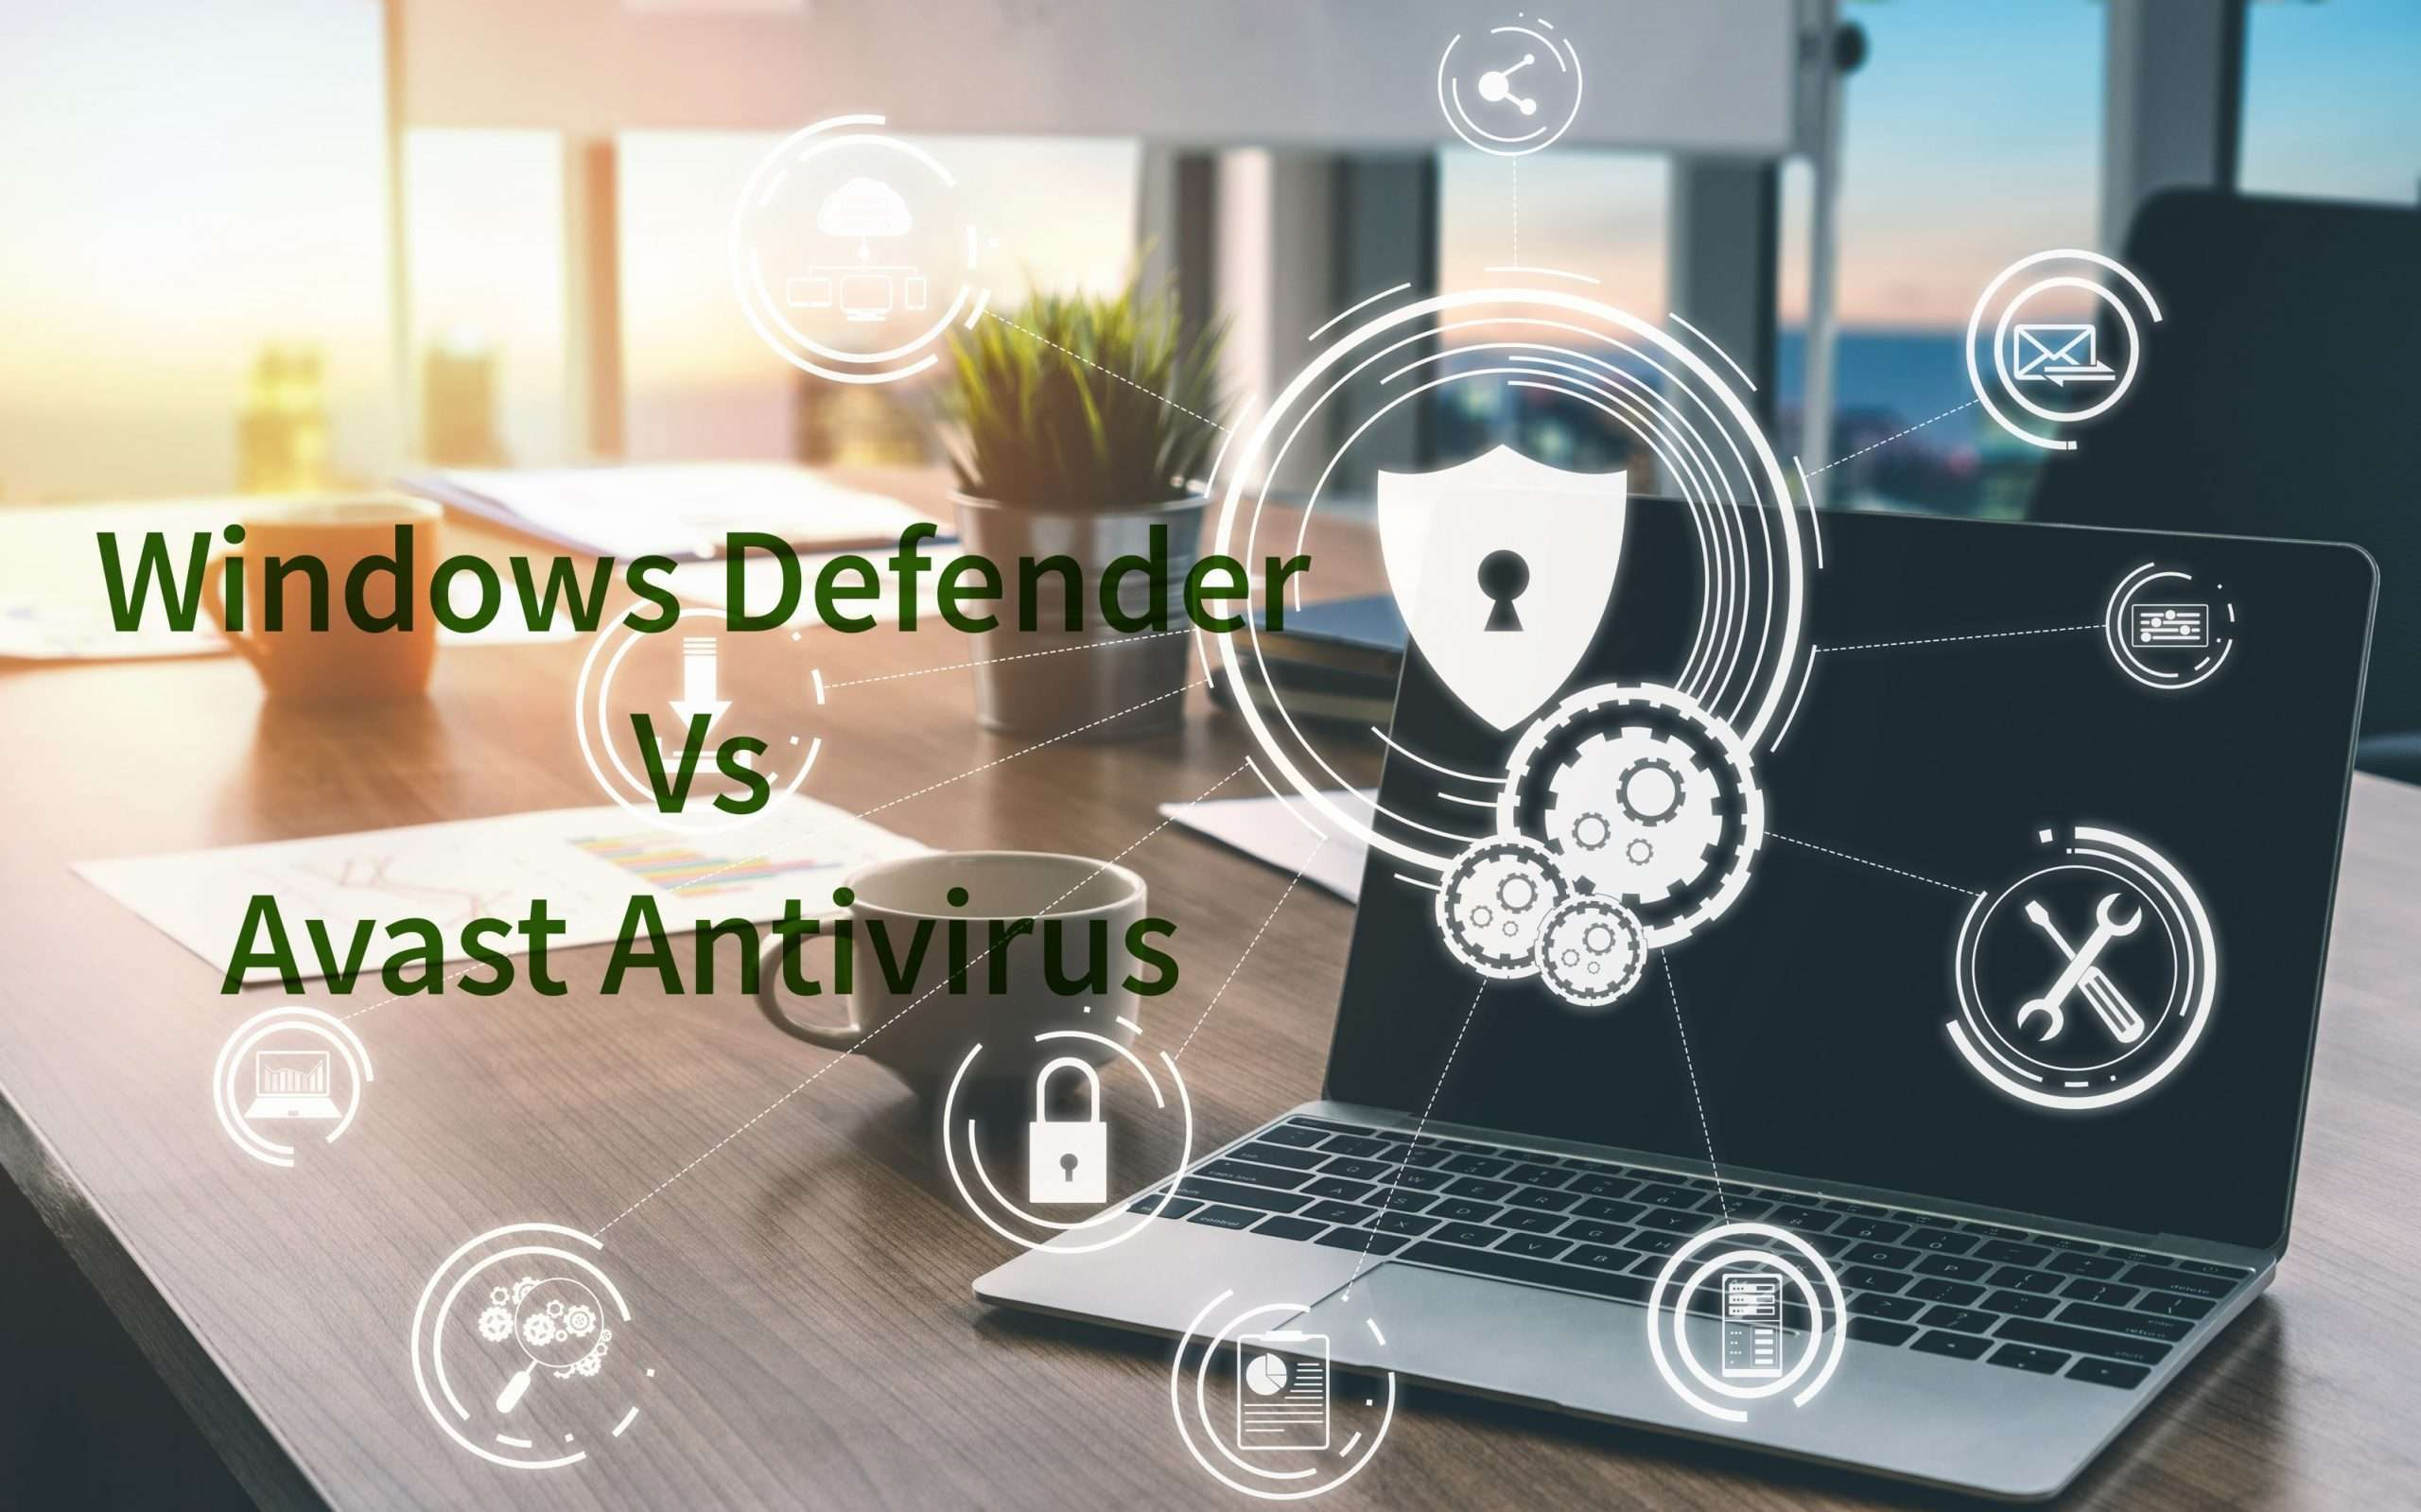 Is Windows Defender better than Avast